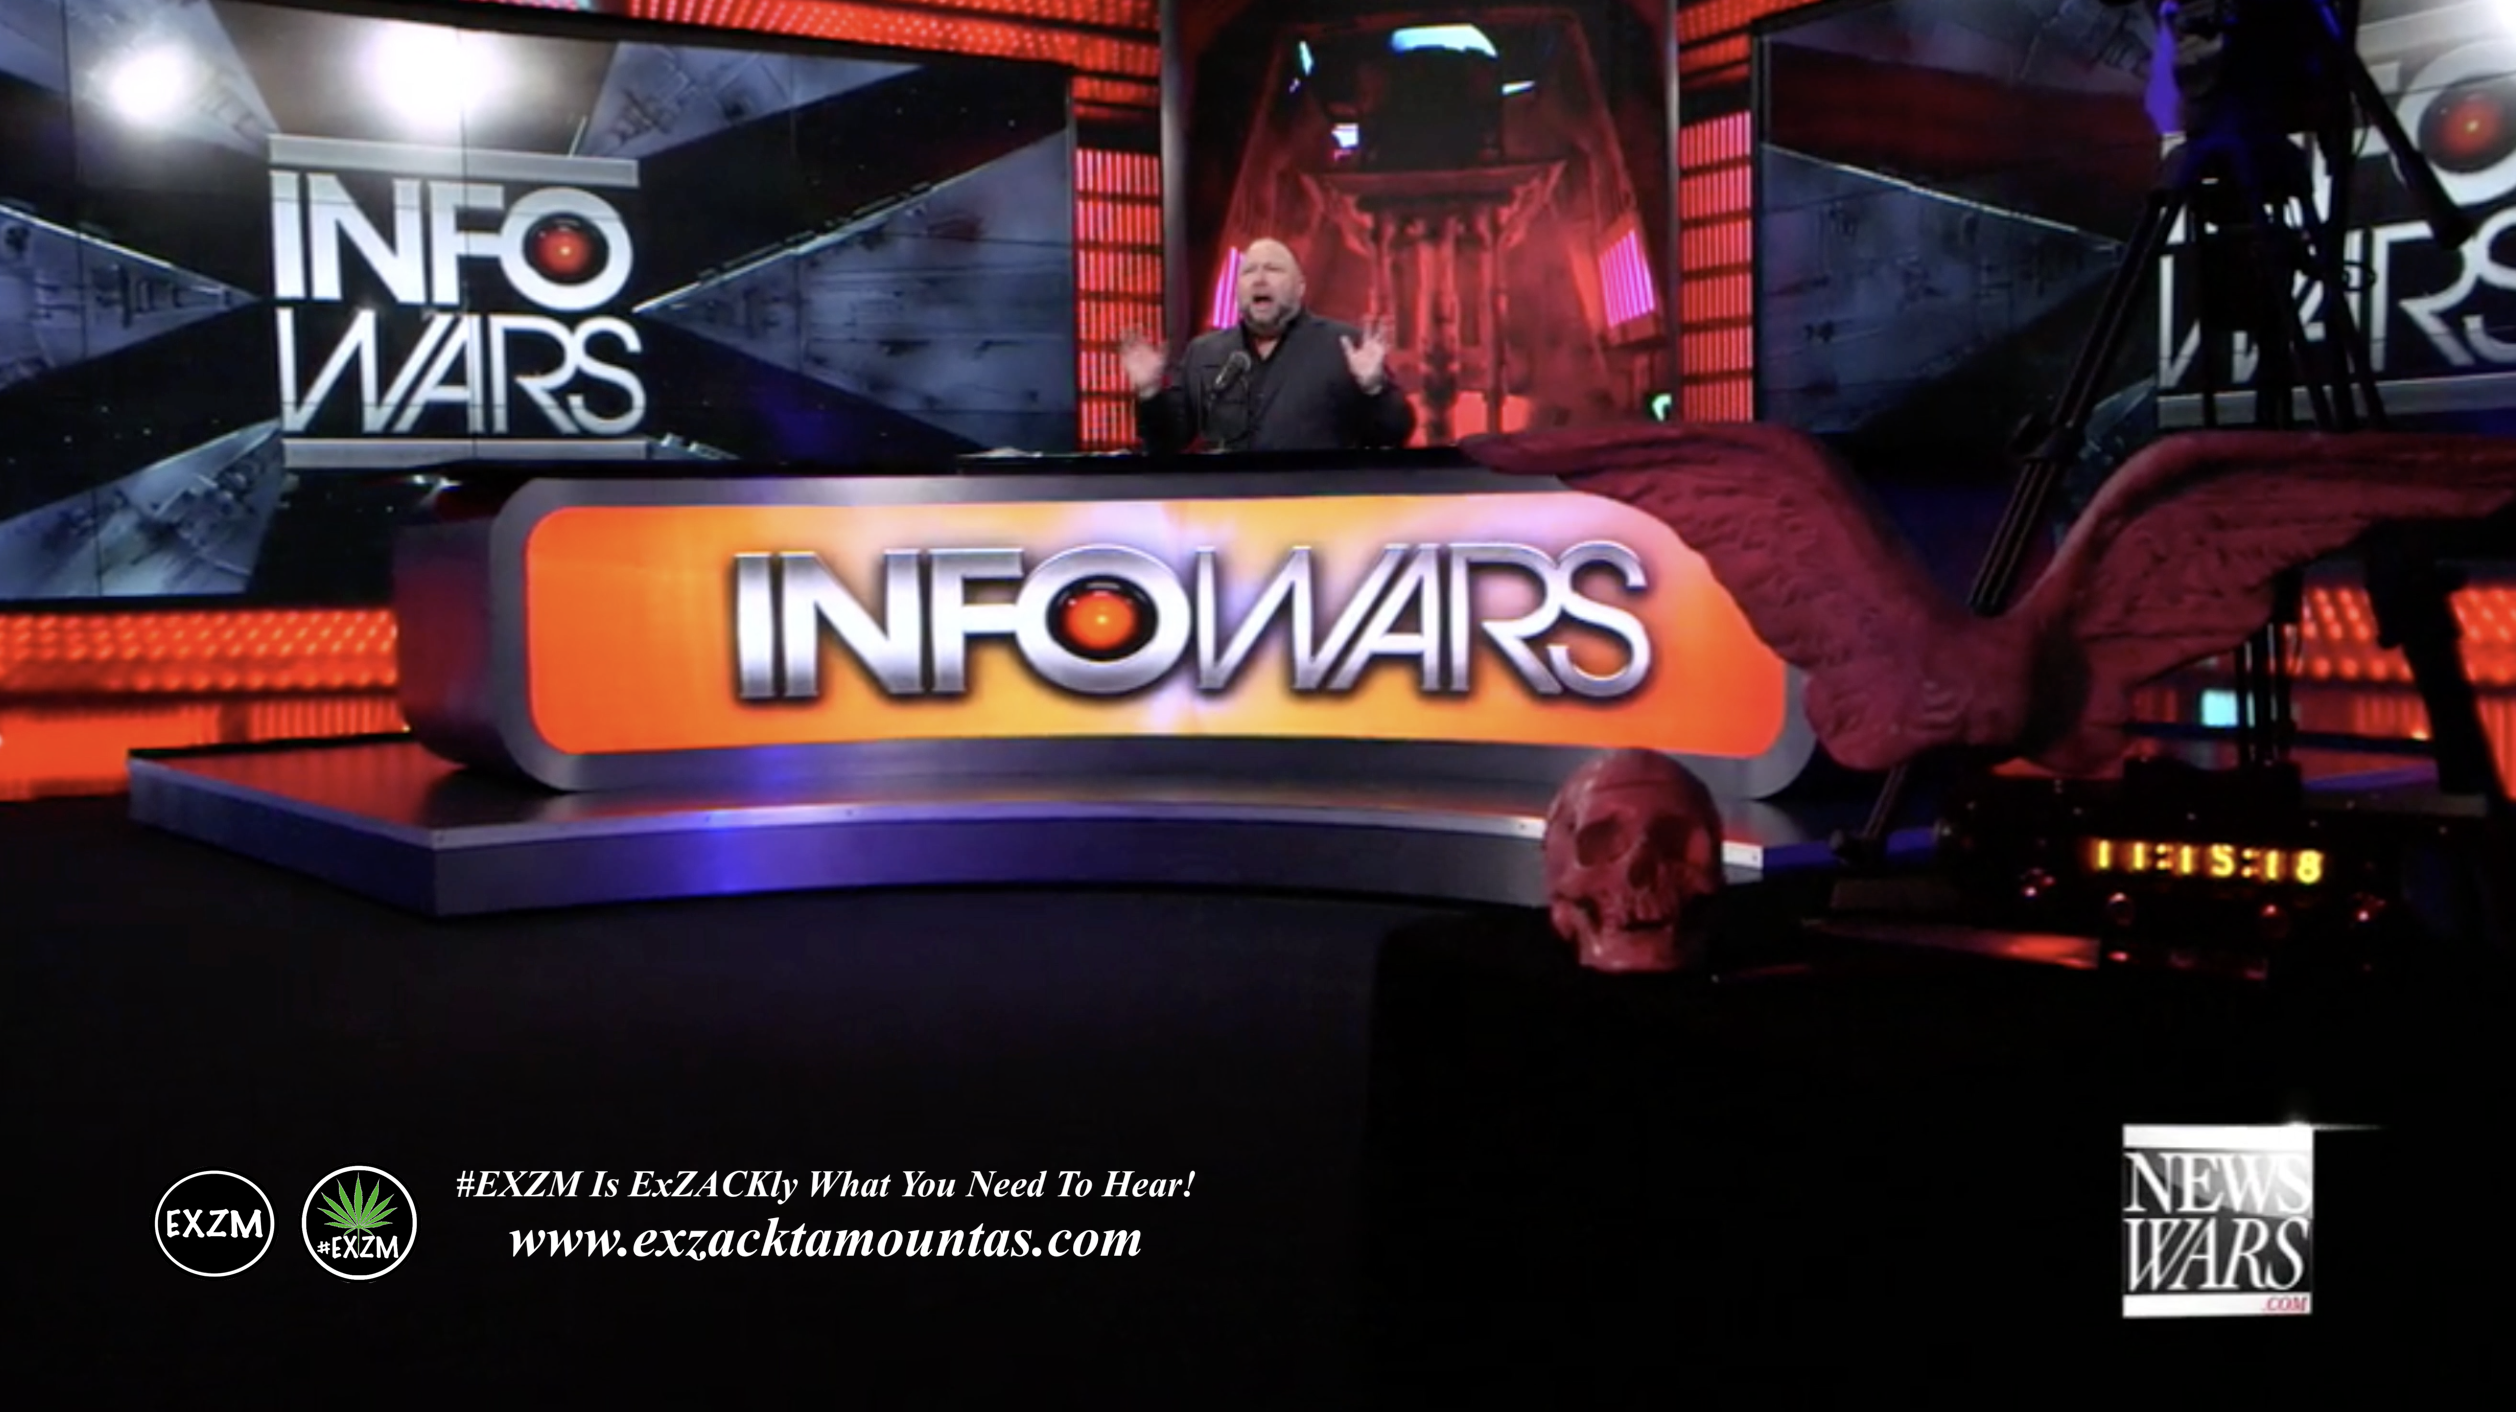 Alex Jones Live Infowars Studio Red Angel Wings Red Human Skull EXZM Zack Mount February 26th 2021 copy